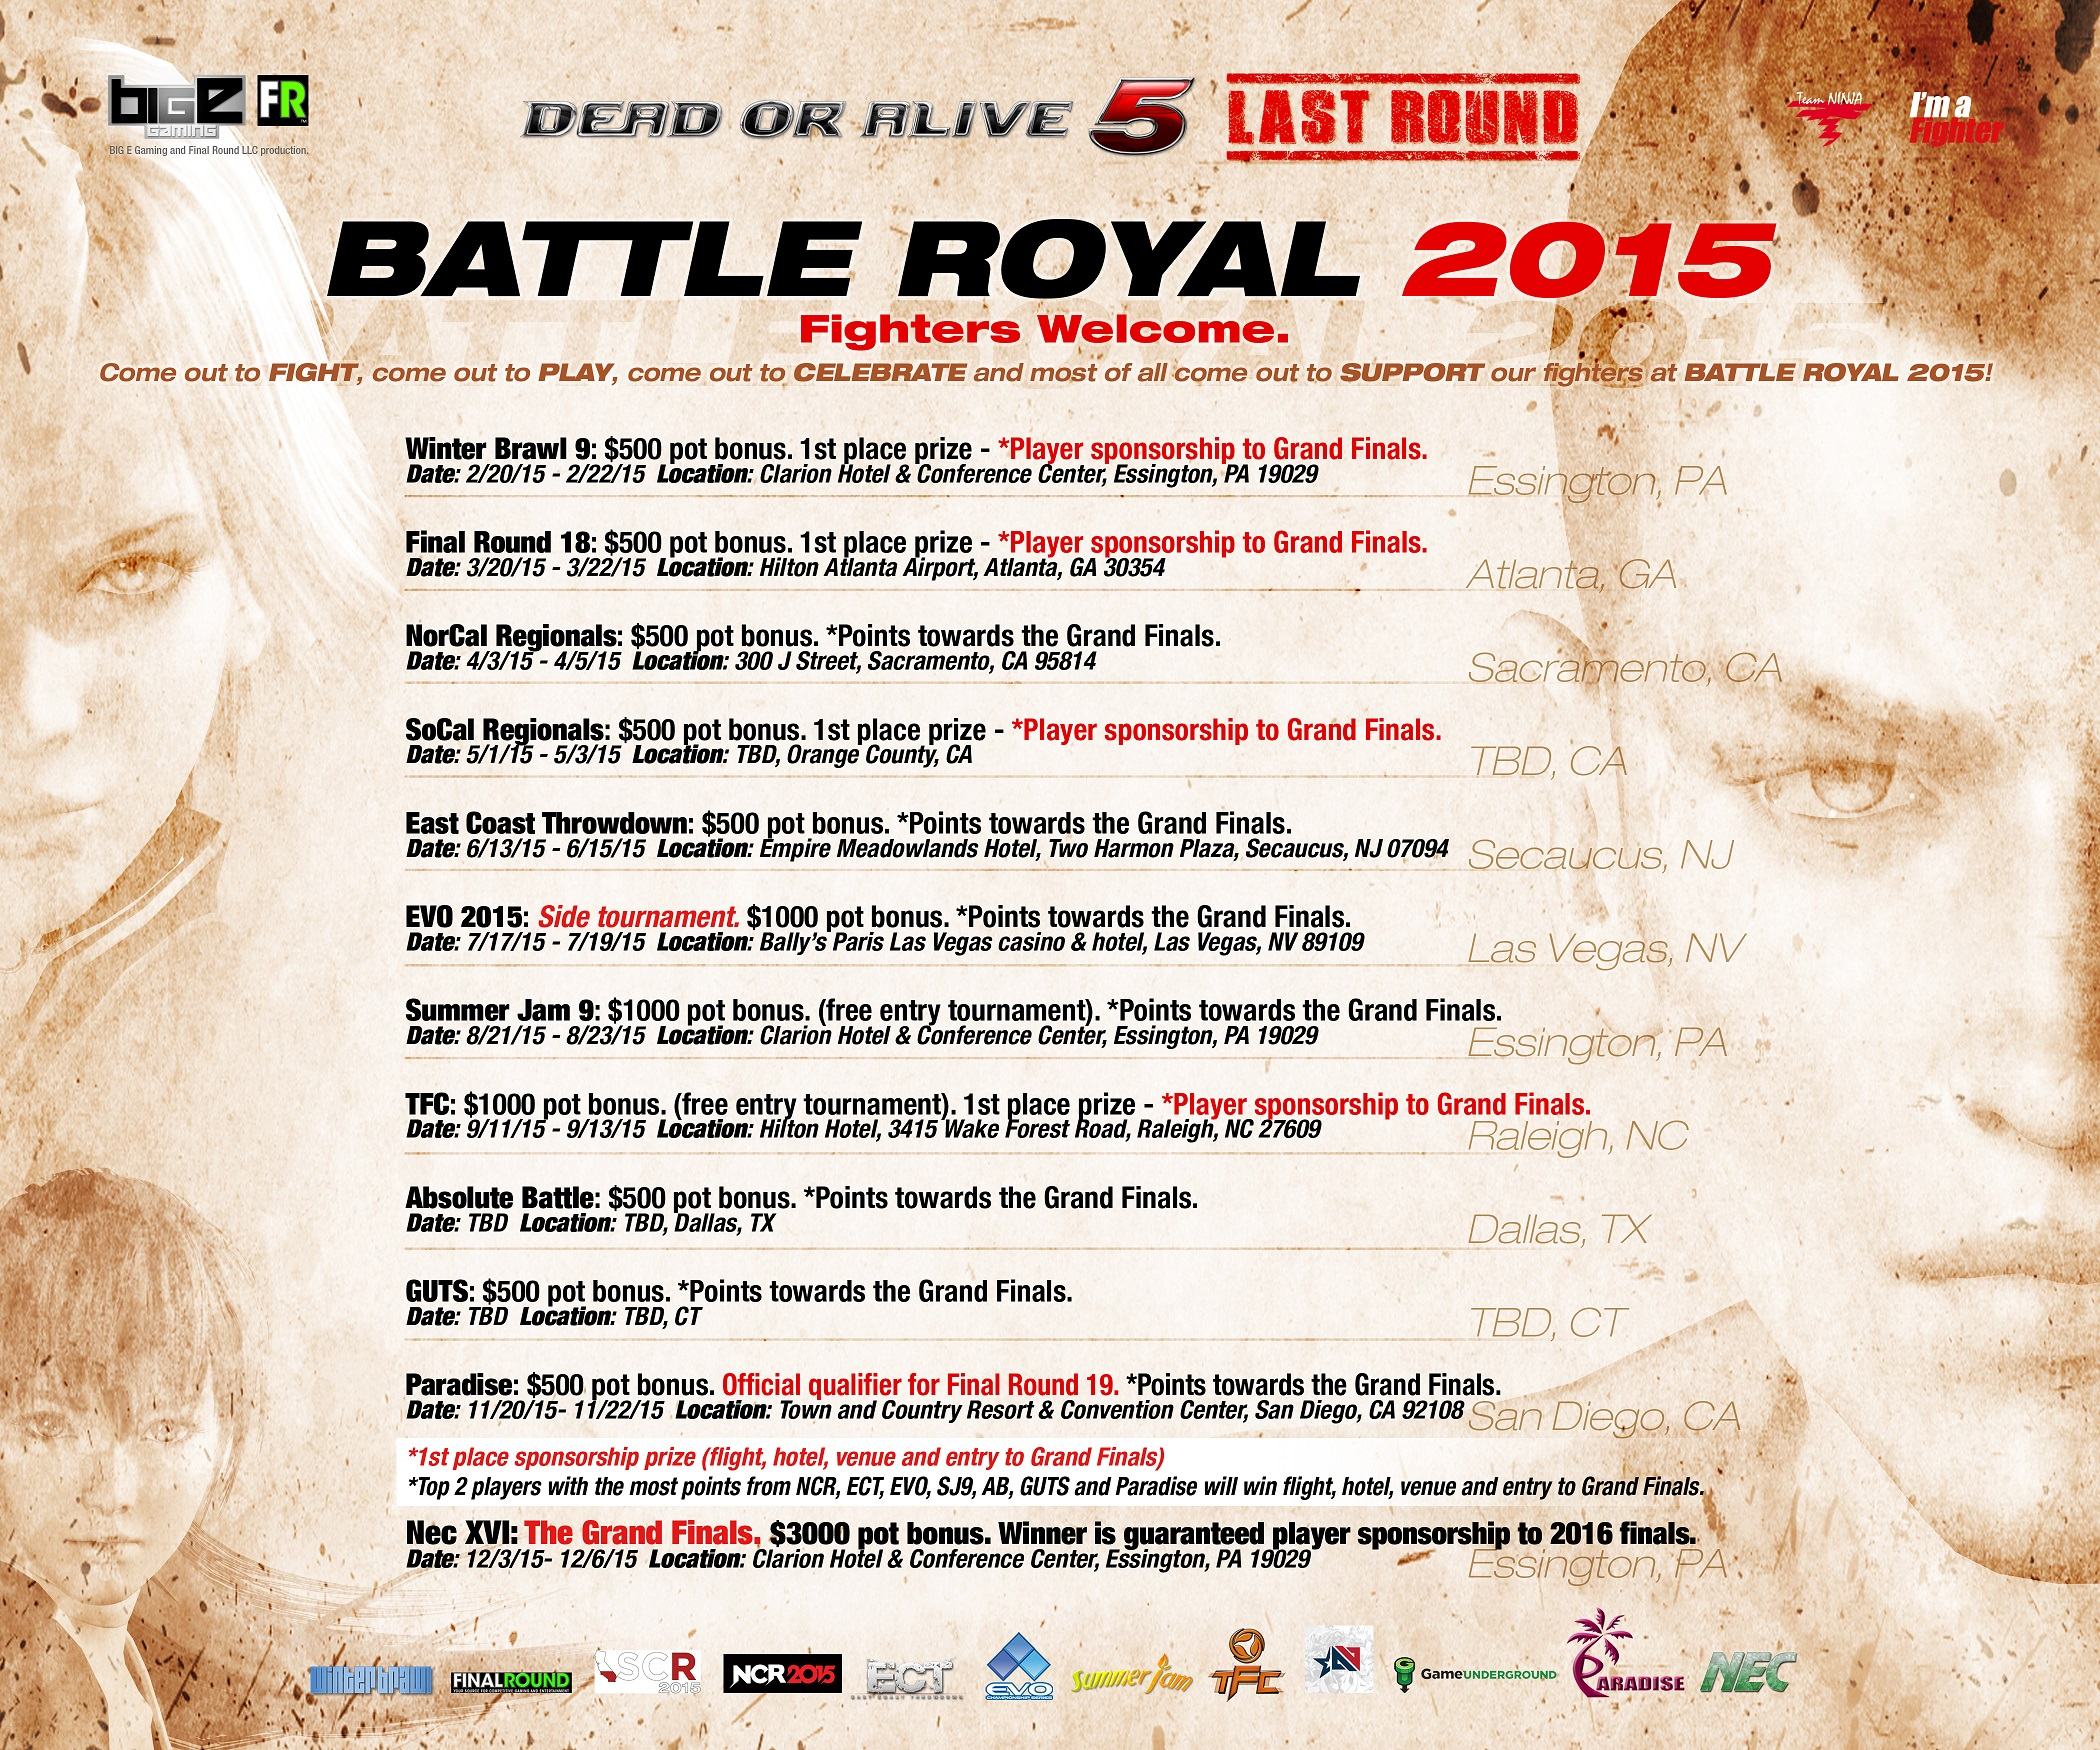 dead-or-alive-5-last-round-battle-royale-schedule